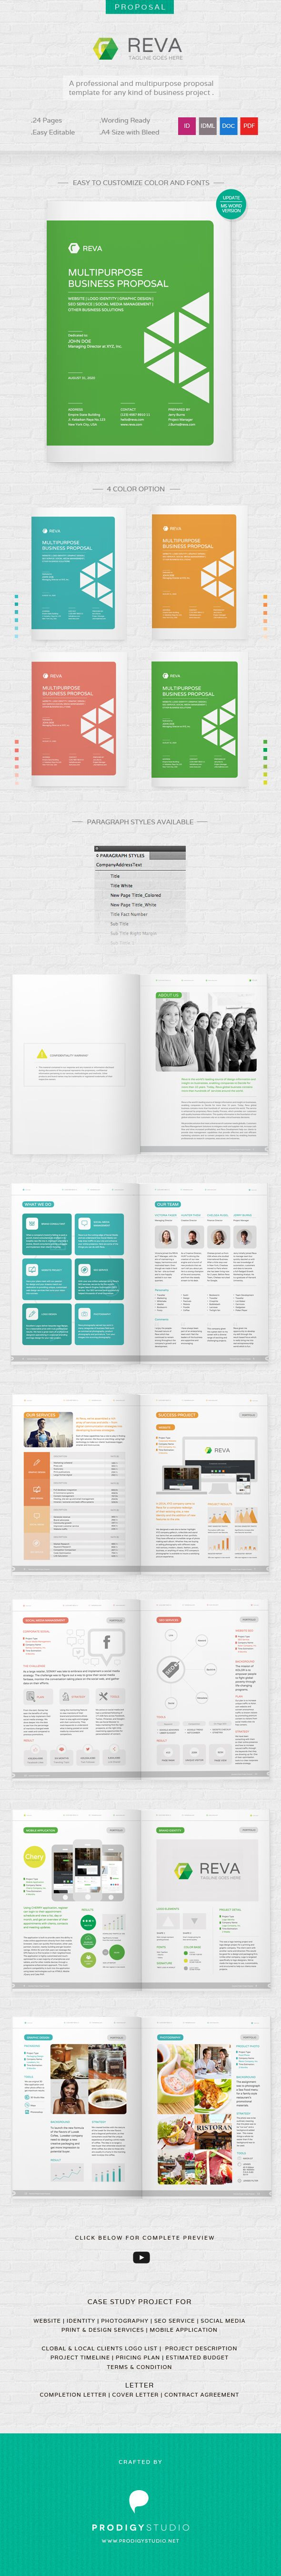 Reva – Multi Purpose Proposal Template  Save your time and money when writing a business proposal. Reva Proposal Template is a part of our complete branding solution. This proposal is suitable for multi purpose business proposal such as IDENTITY Proposal PHOTOGRAPHY Proposal, Business Proposal, SEO Proposal, PRINT & DESIGN Proposal, MOBILE APPLICATION Proposal.   Download here: http://graphicriver.net/item/reva-multi-purpose-proposal-template/6803021?ref=prodigystudio